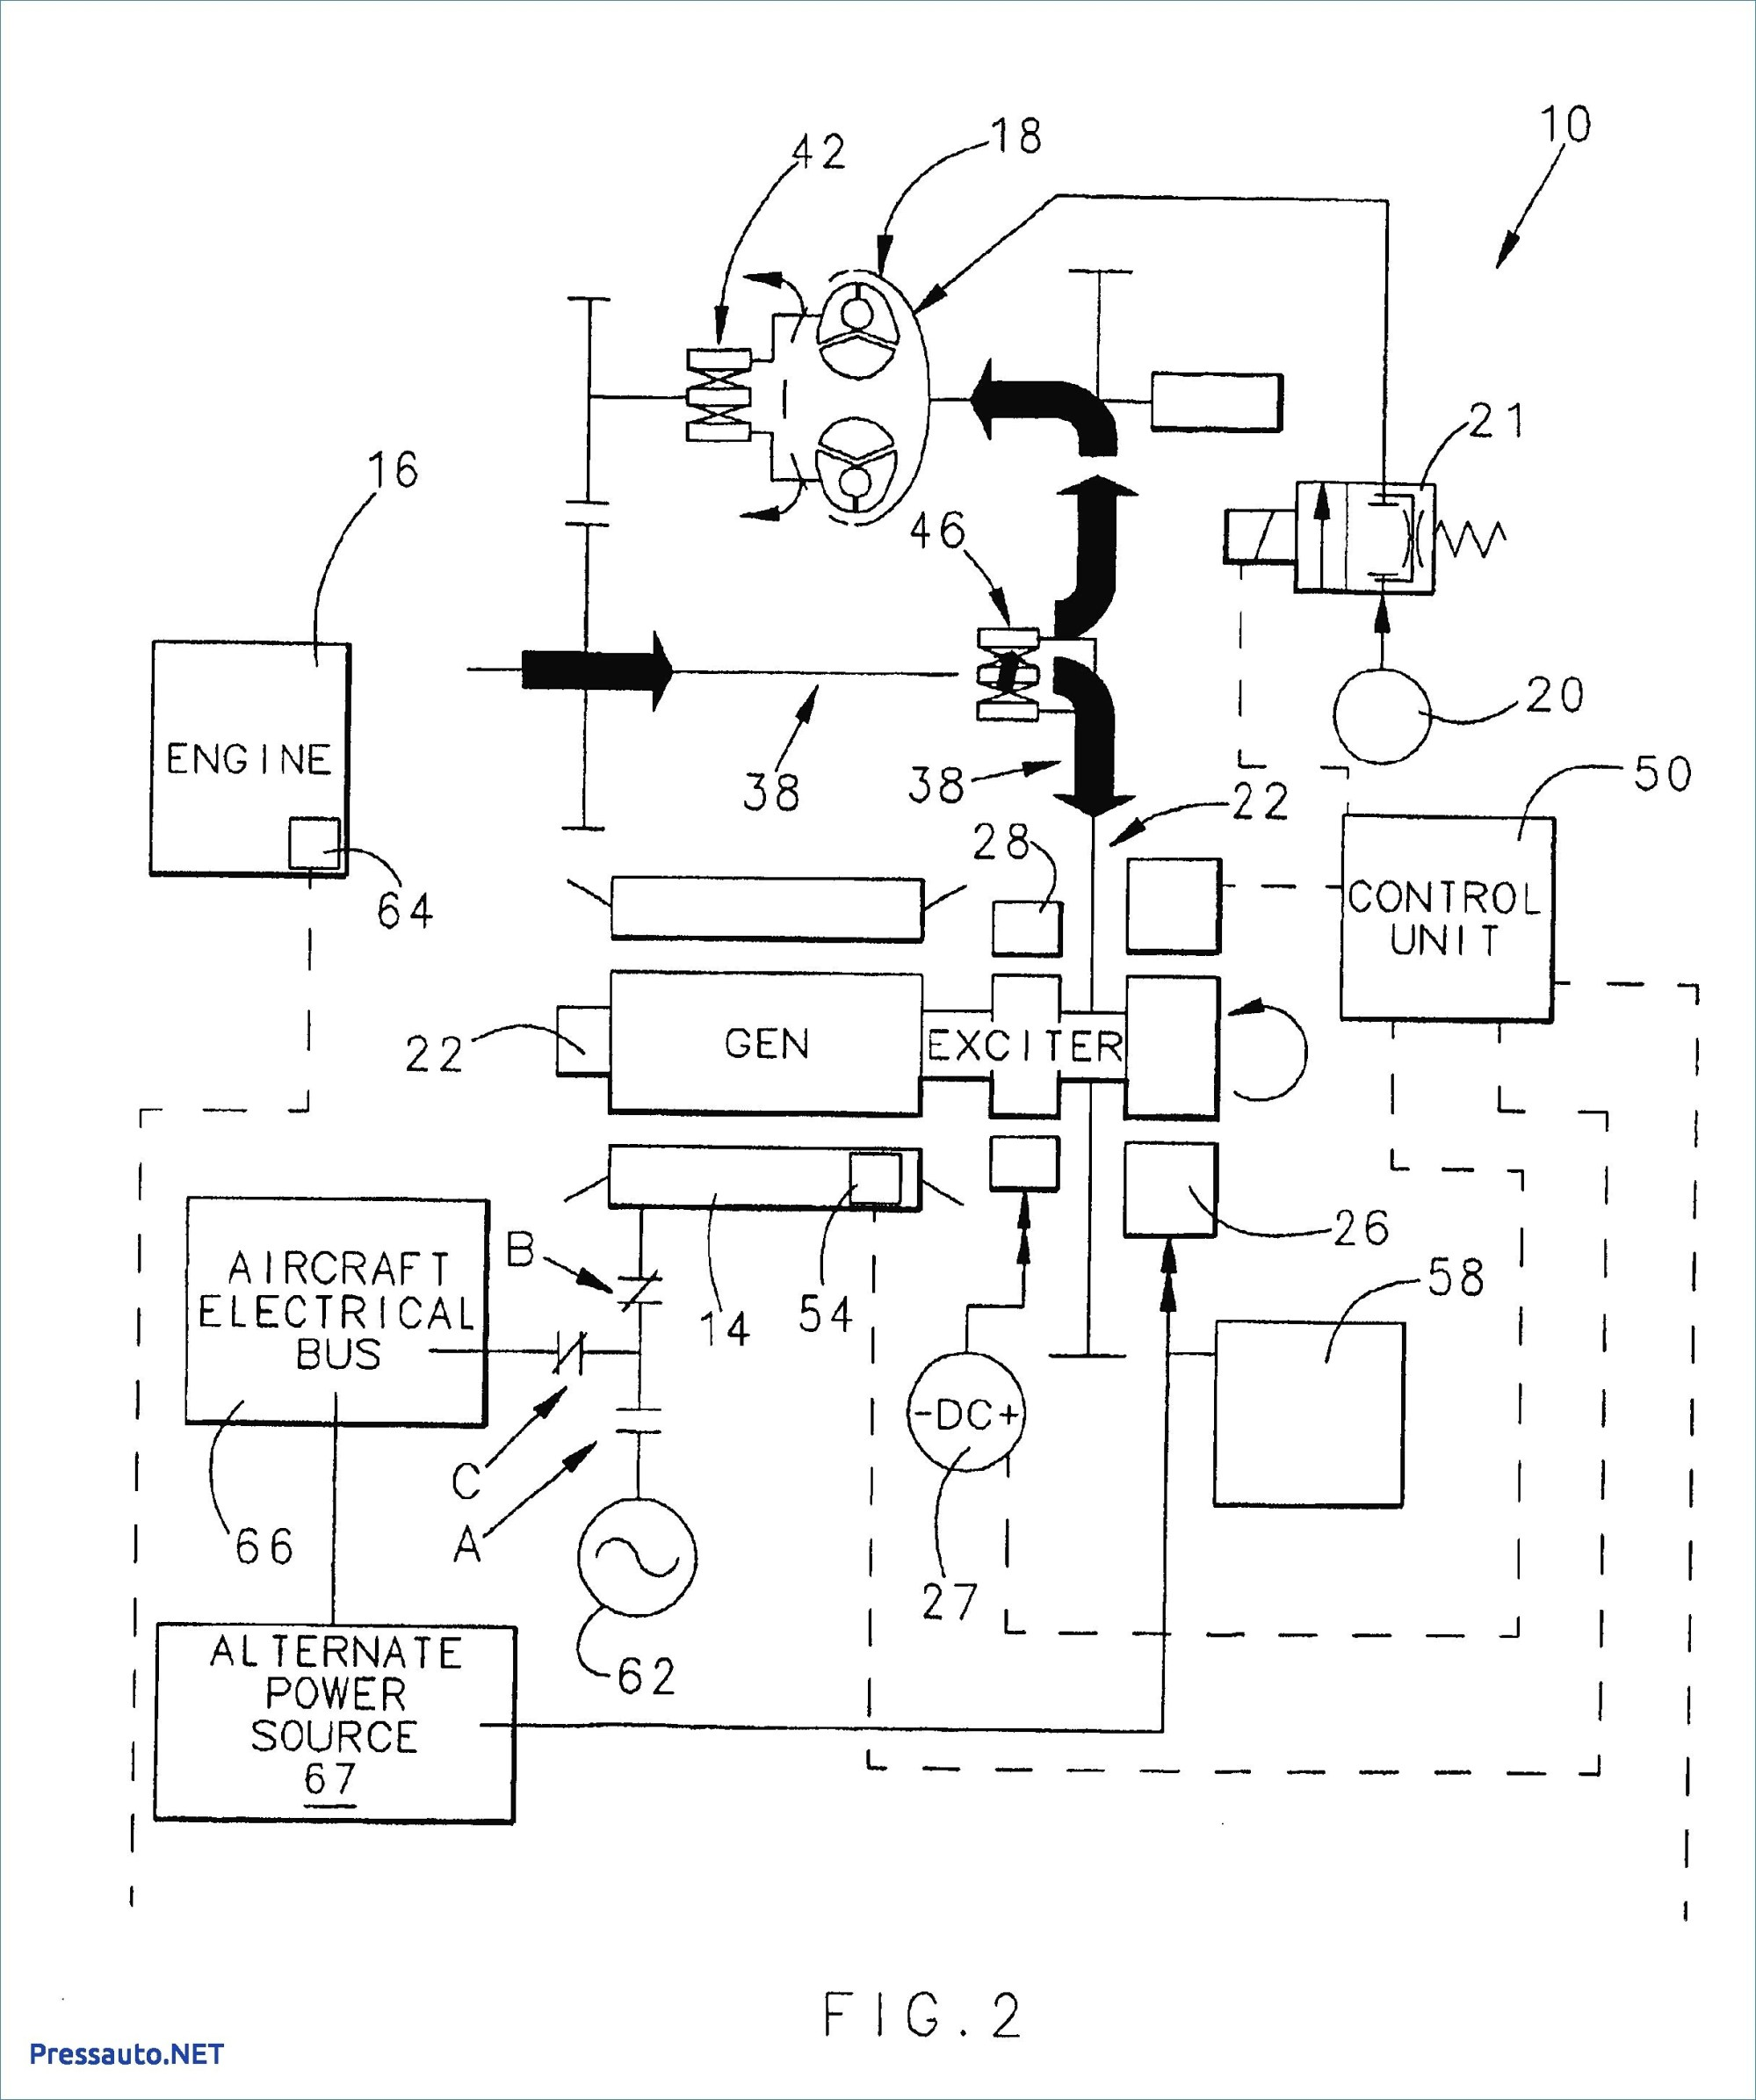 hight resolution of ac delco 4 wire alternator wiring diagram